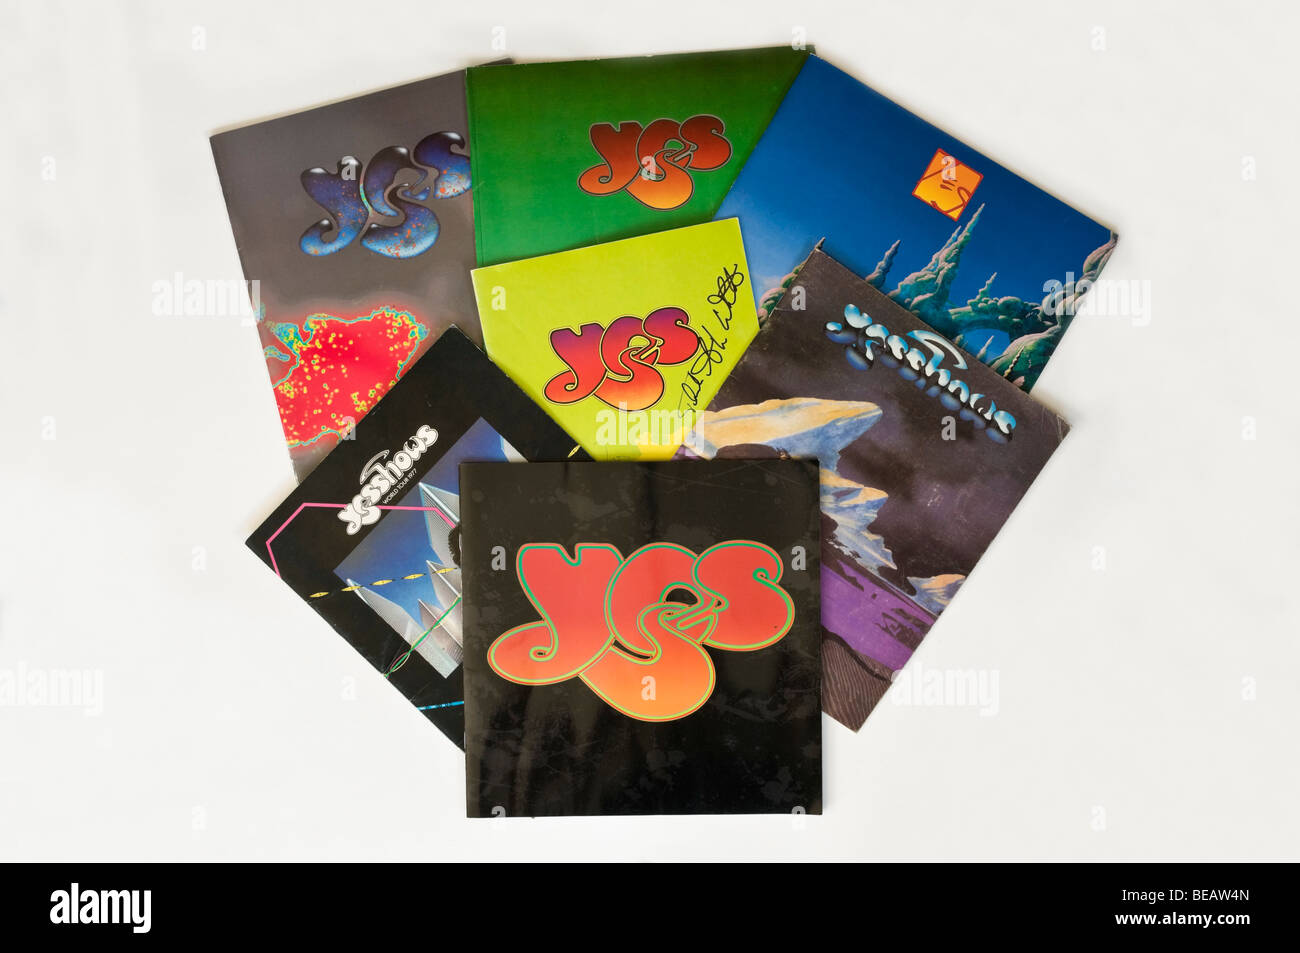 Collection of concert tour programmes by the rock group Yes - Stock Image